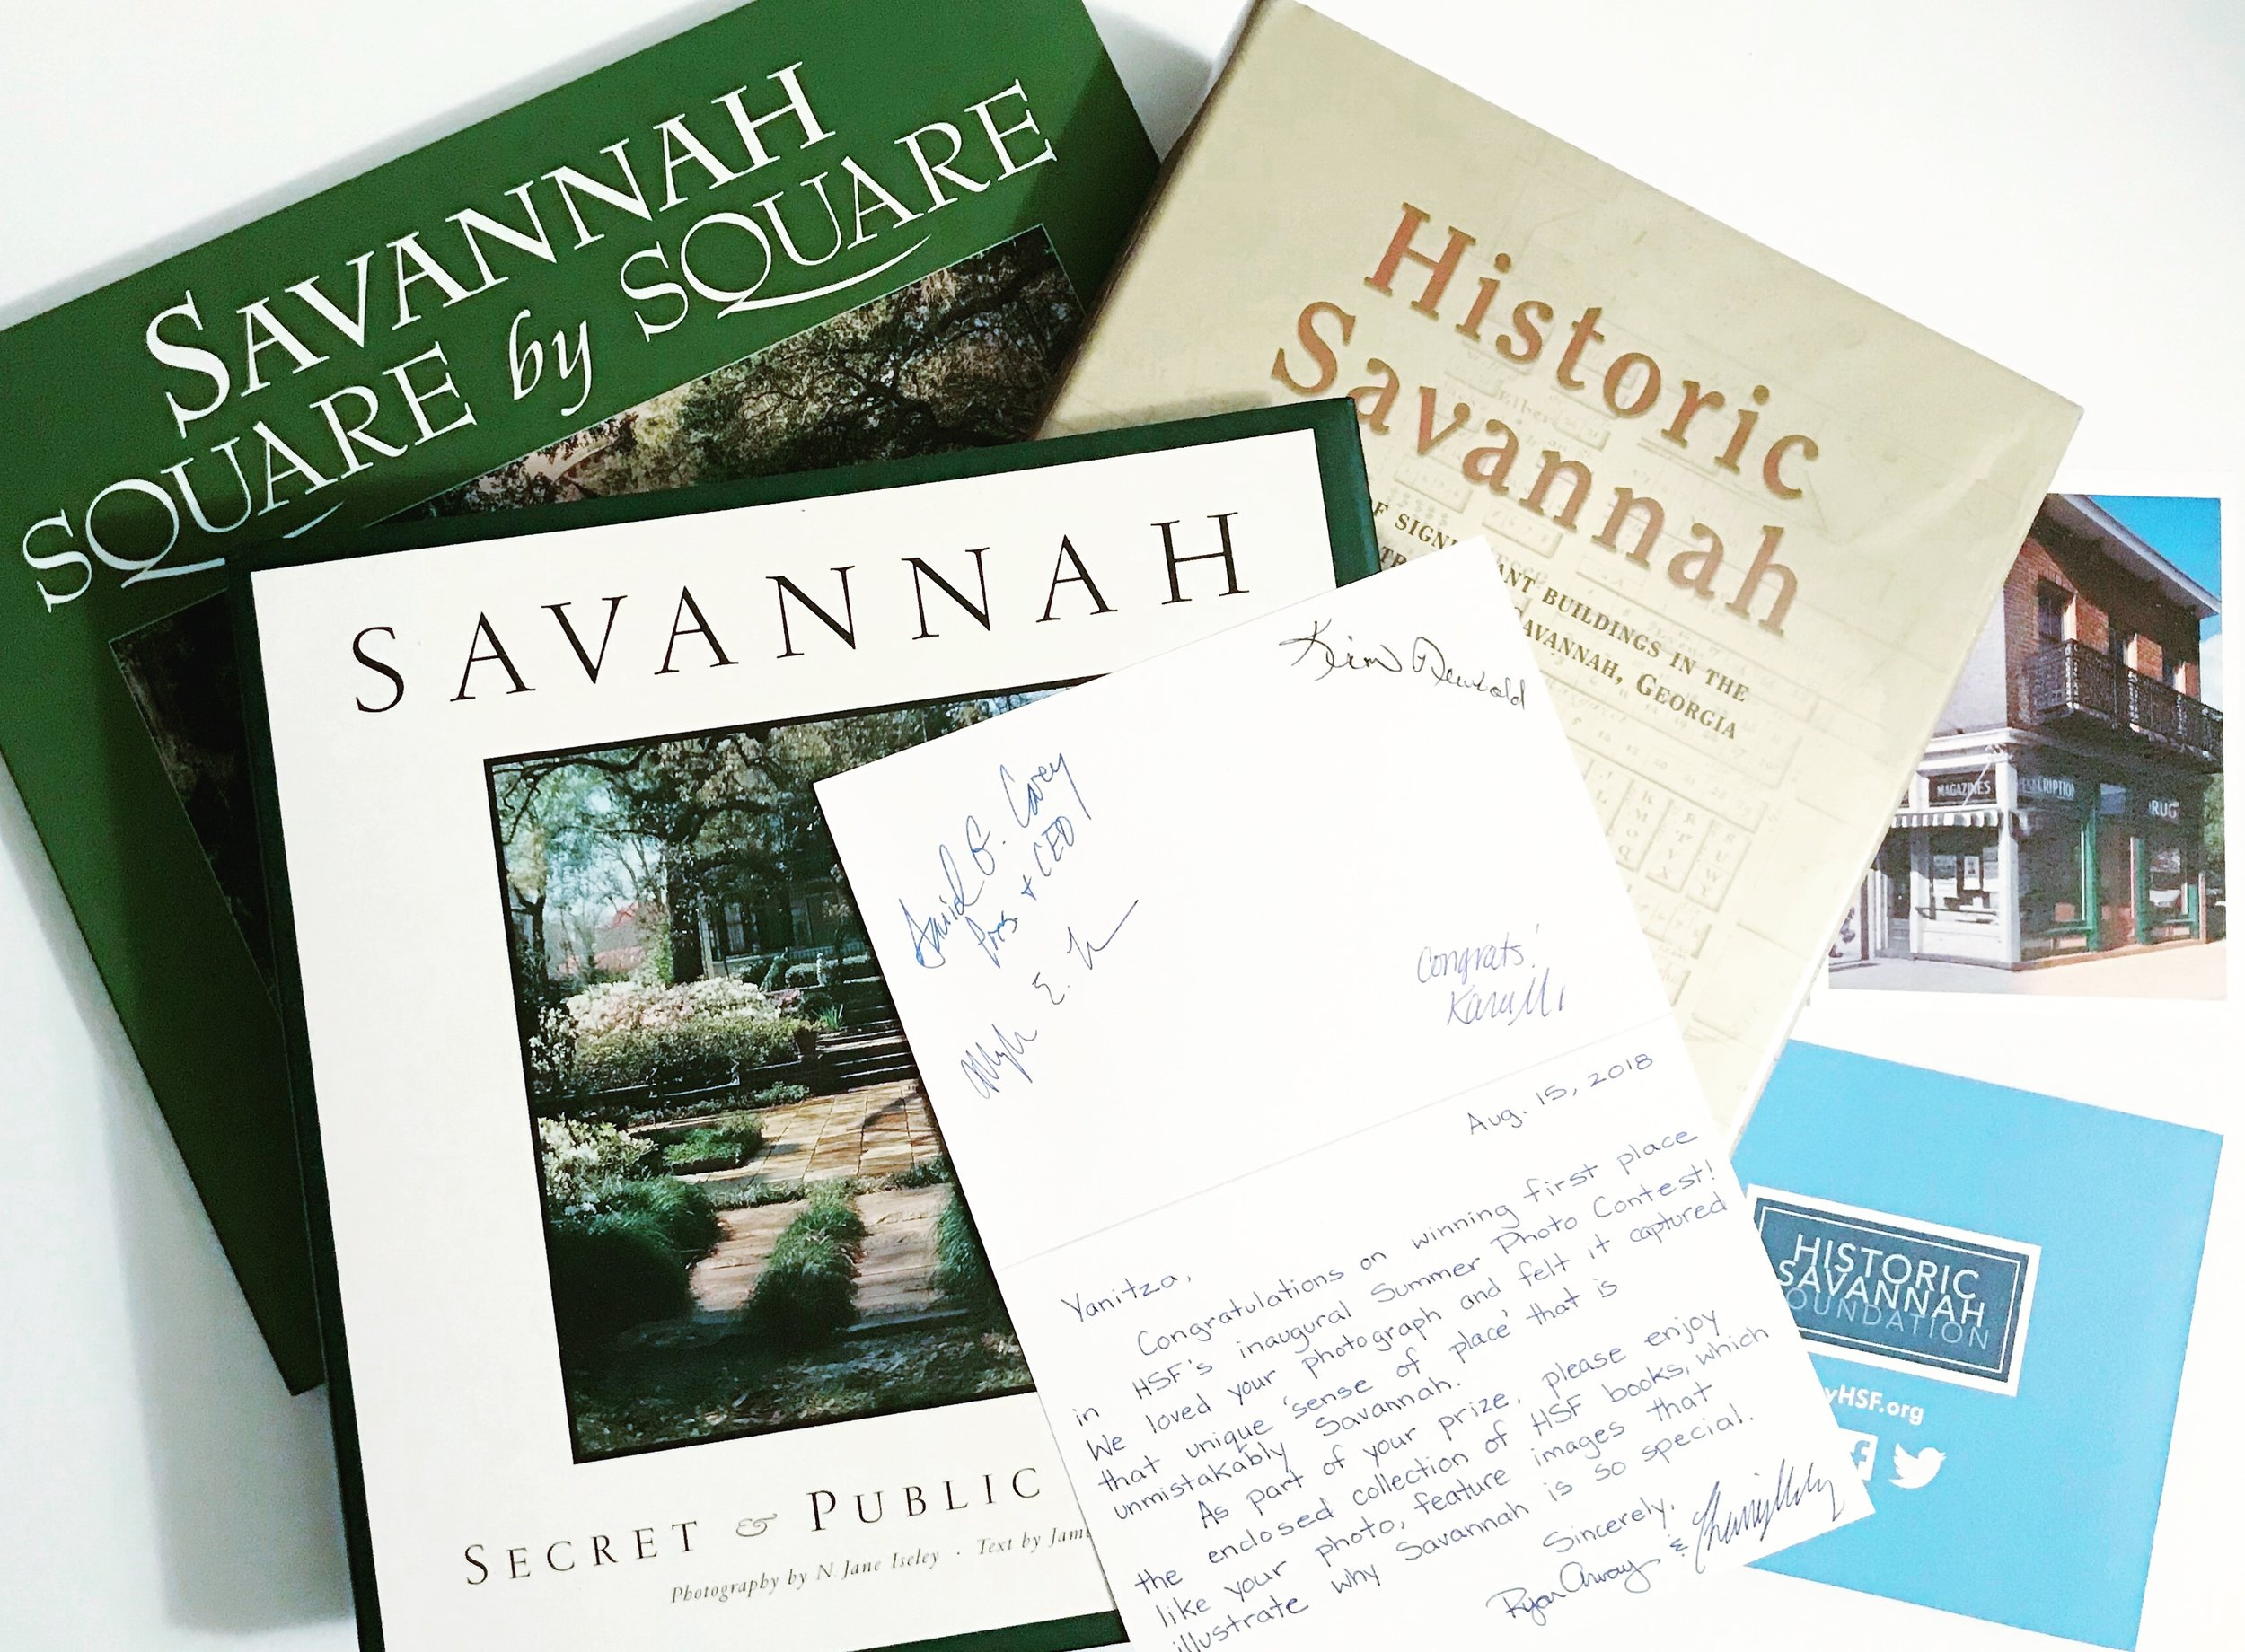 My prizes from Historic Savannah Foundation. They also sent me $250!! Sweet